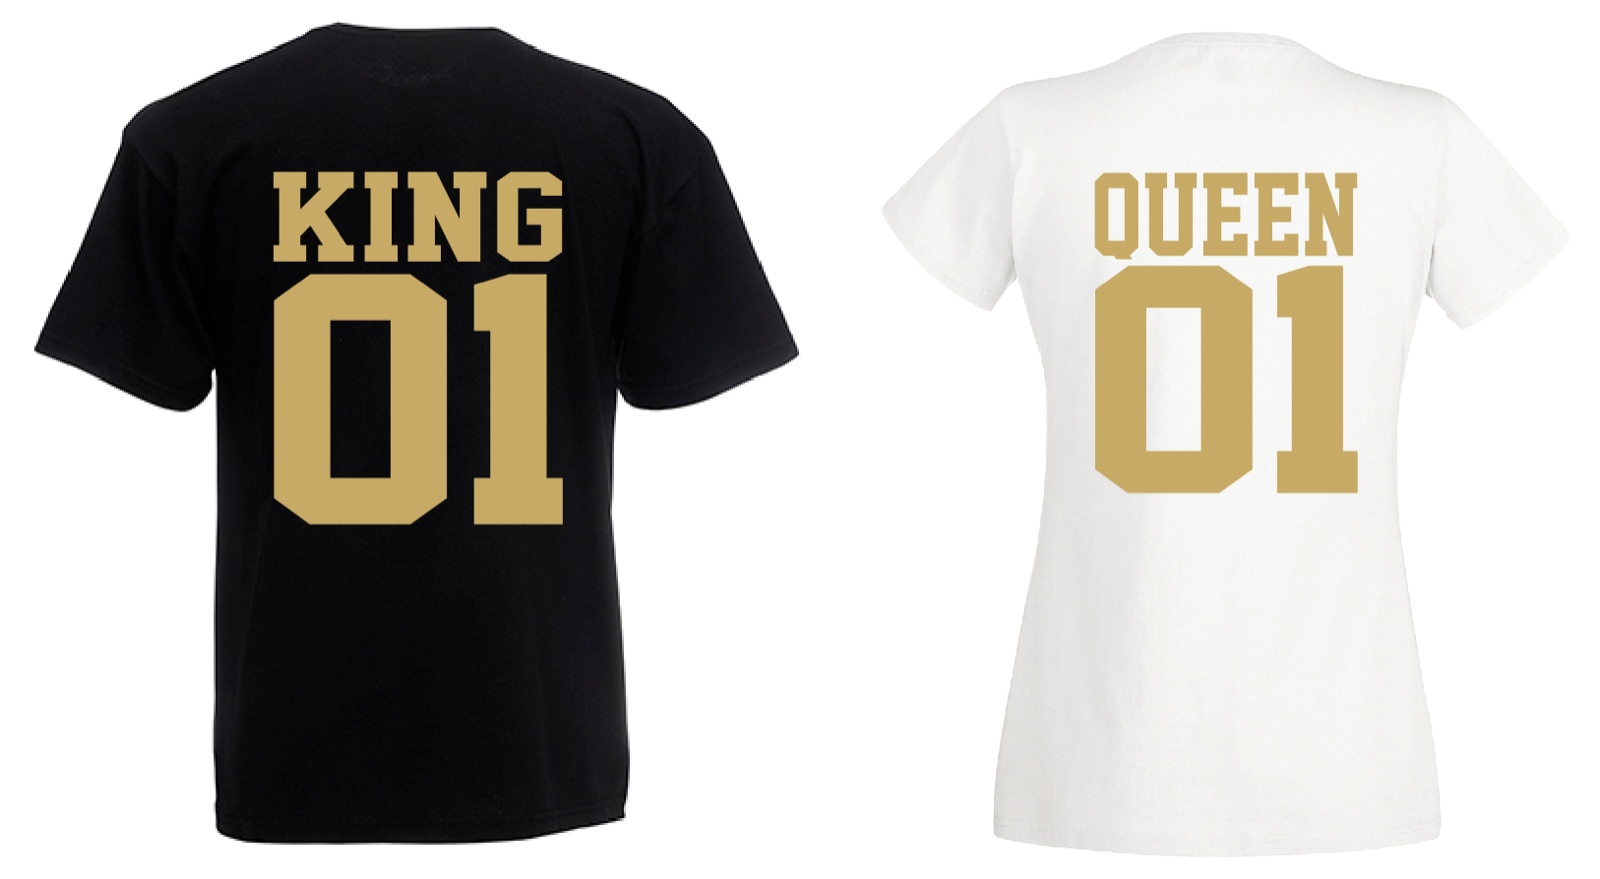 Partner Look T-Shirt KING PRINCE QUEEN PRINCESS mit Wunschzahl college style